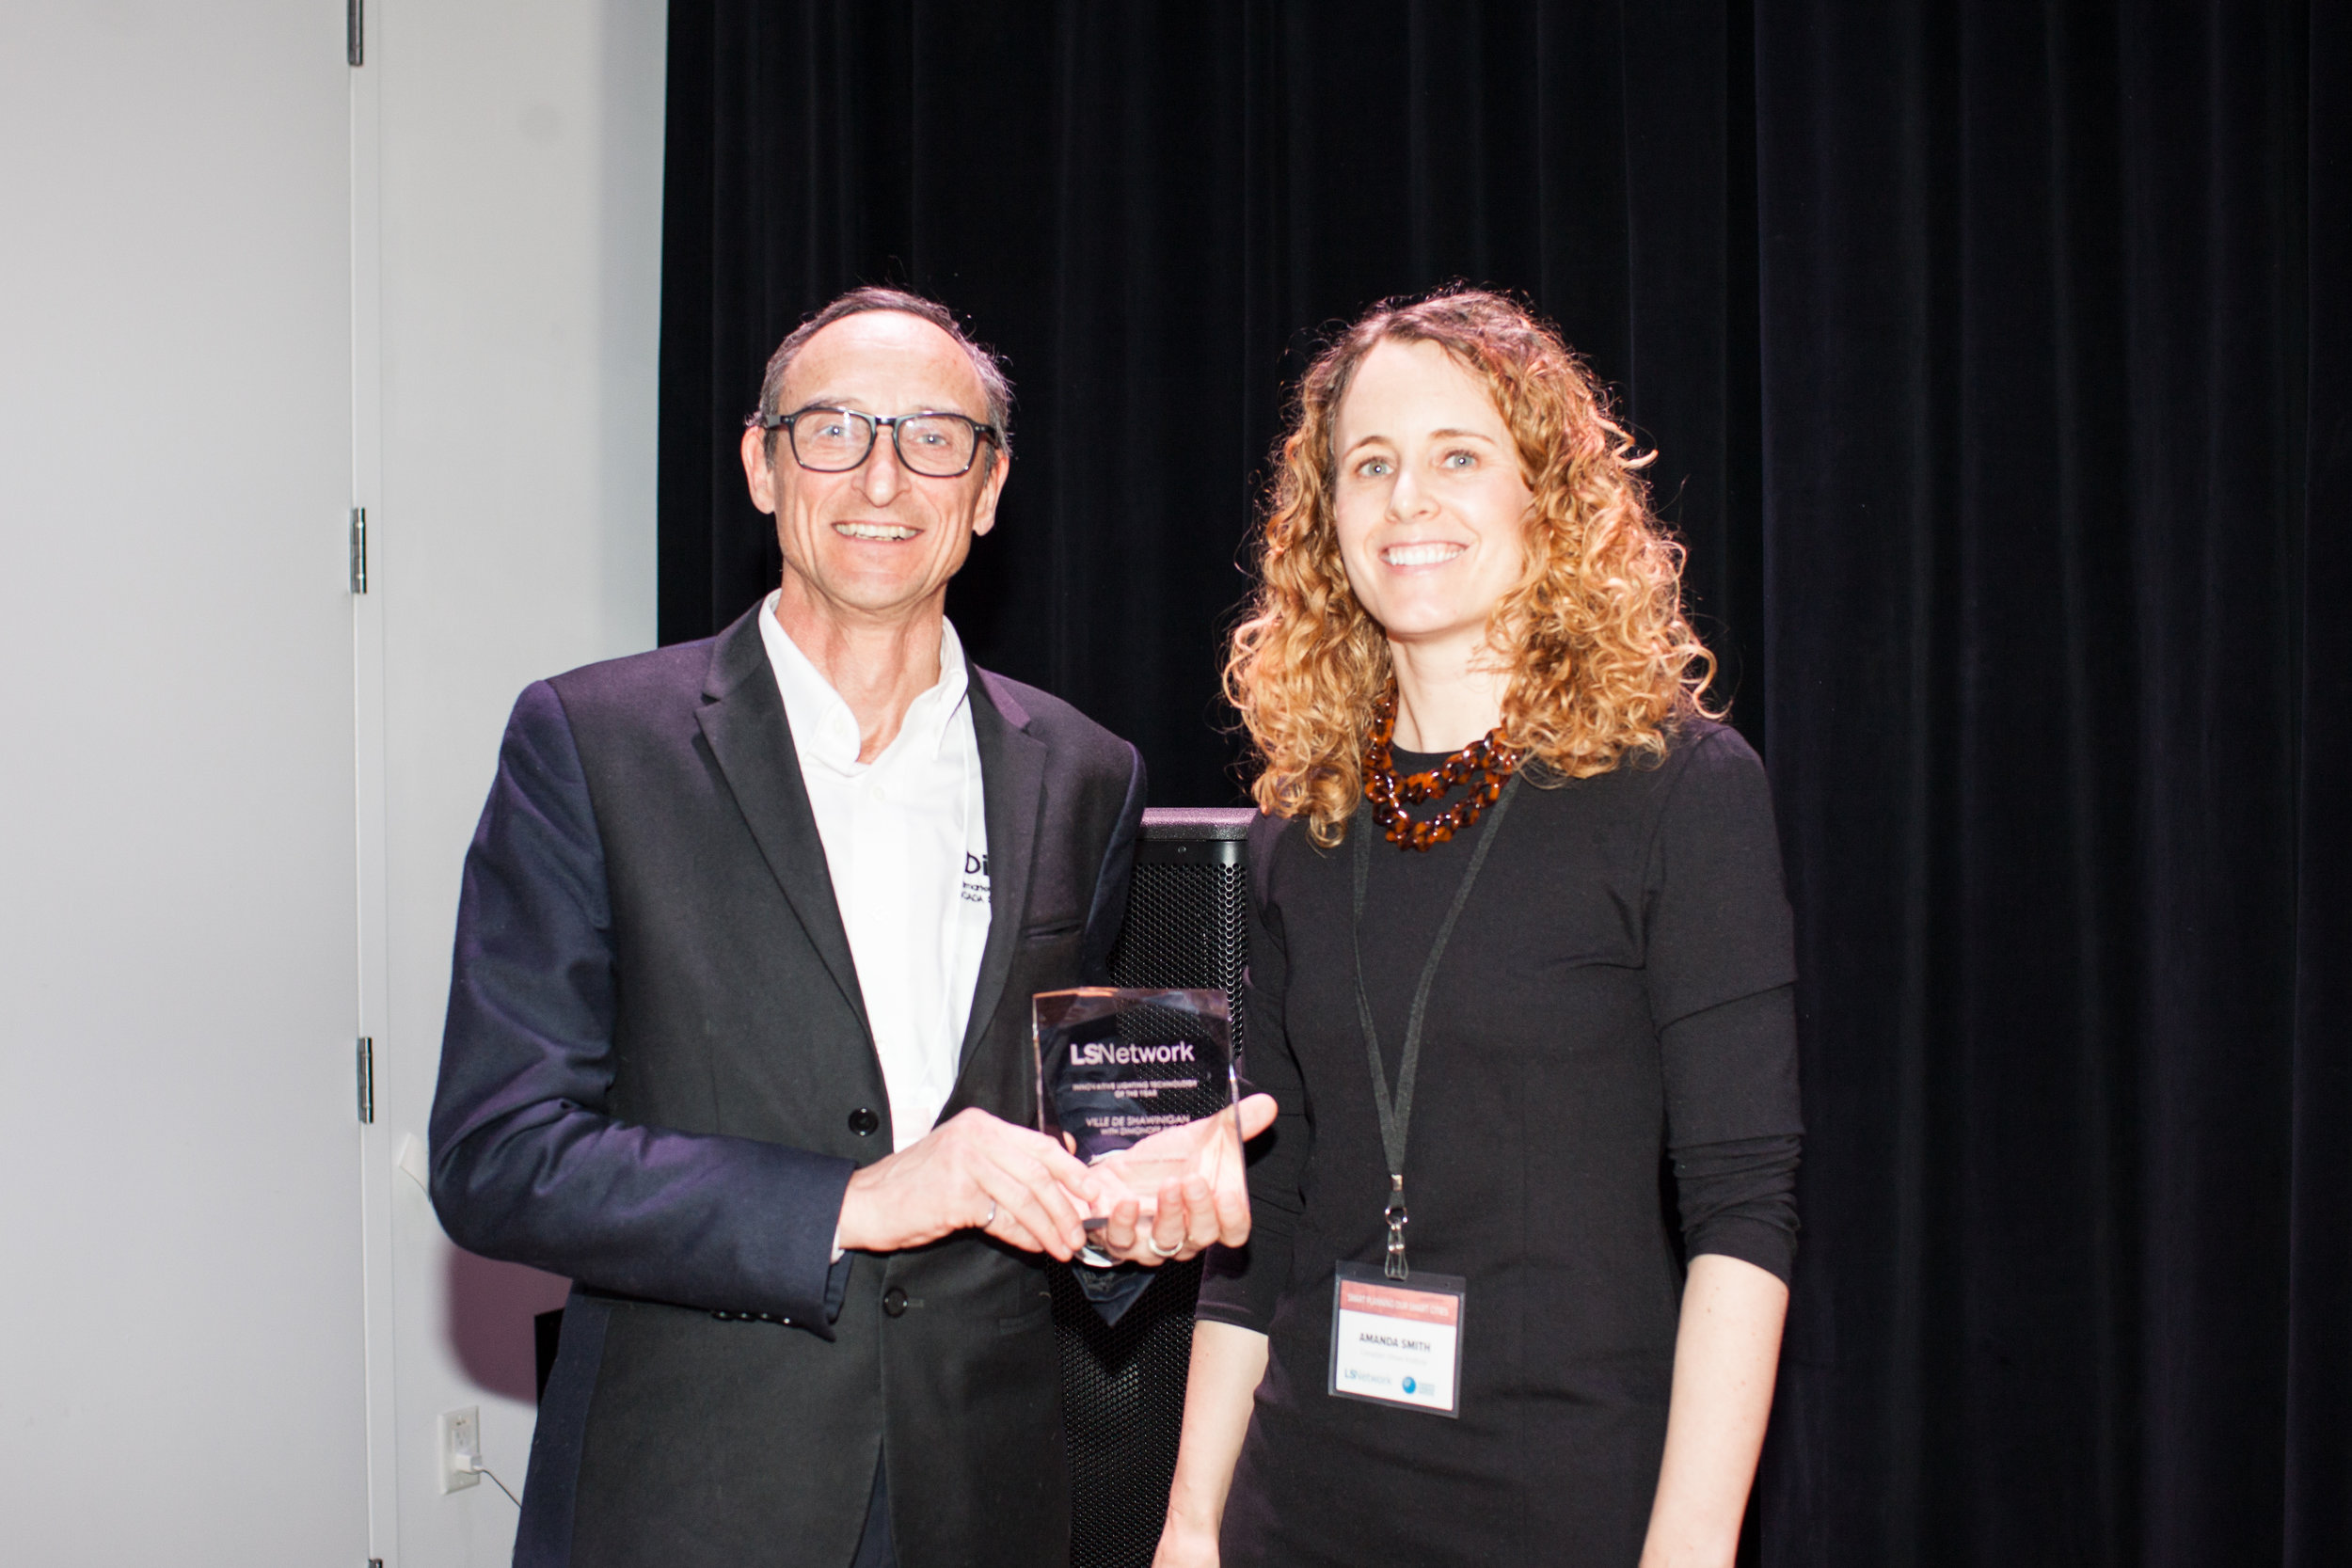 Bernard Tetu, President of DimOnOff, accepting the award on behalf of the City of Shawinigan and DimOnOff, with Amanda Smith of LSNetwork.